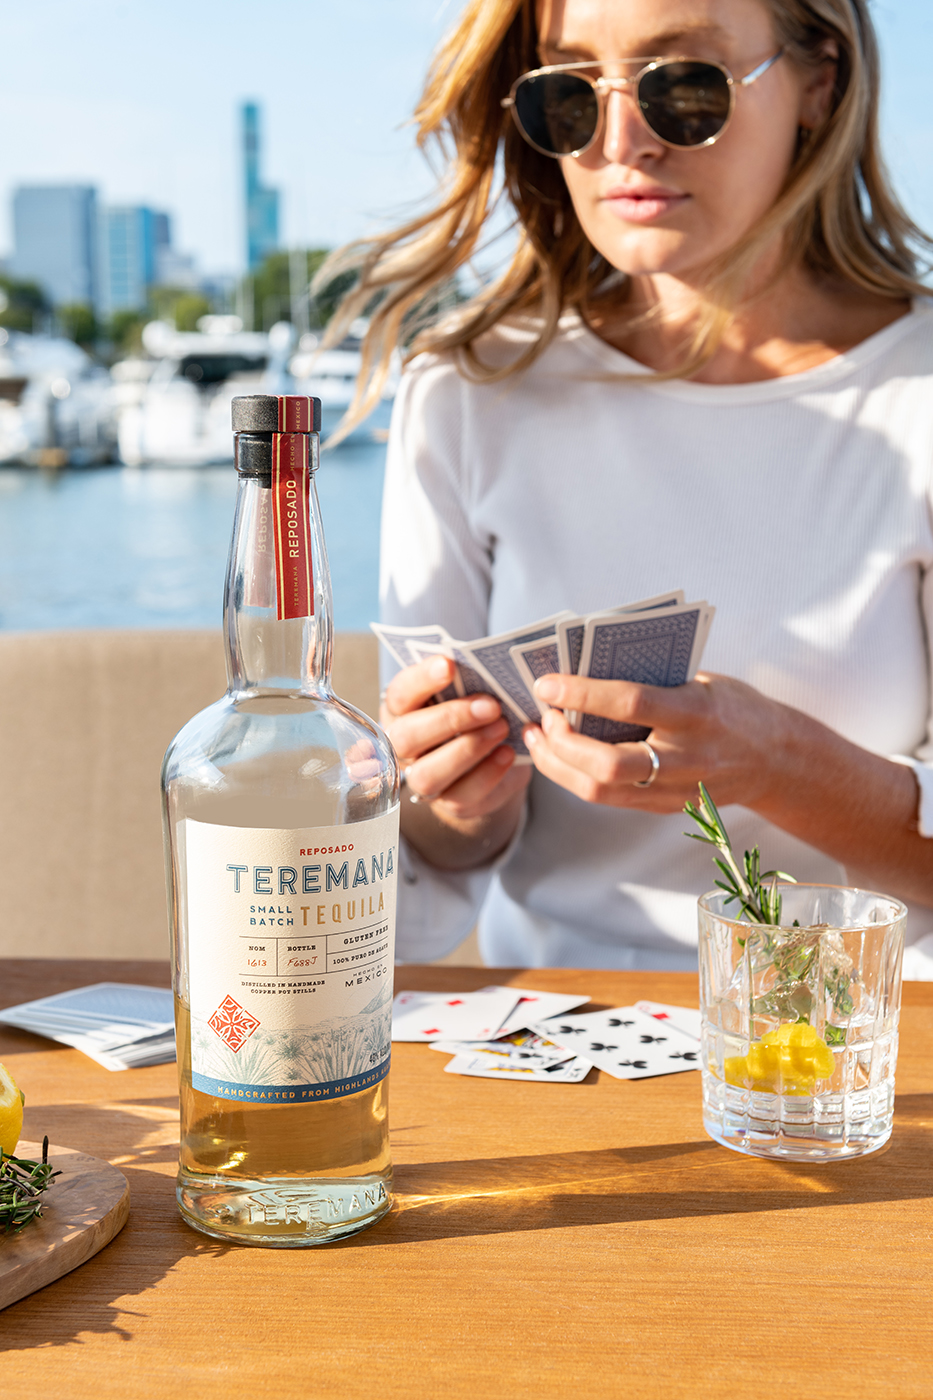 Woman playing cards on a boat with a near empty glass of Teramana Tequila garnished with citrus and rosemary shot by Morgan Ione